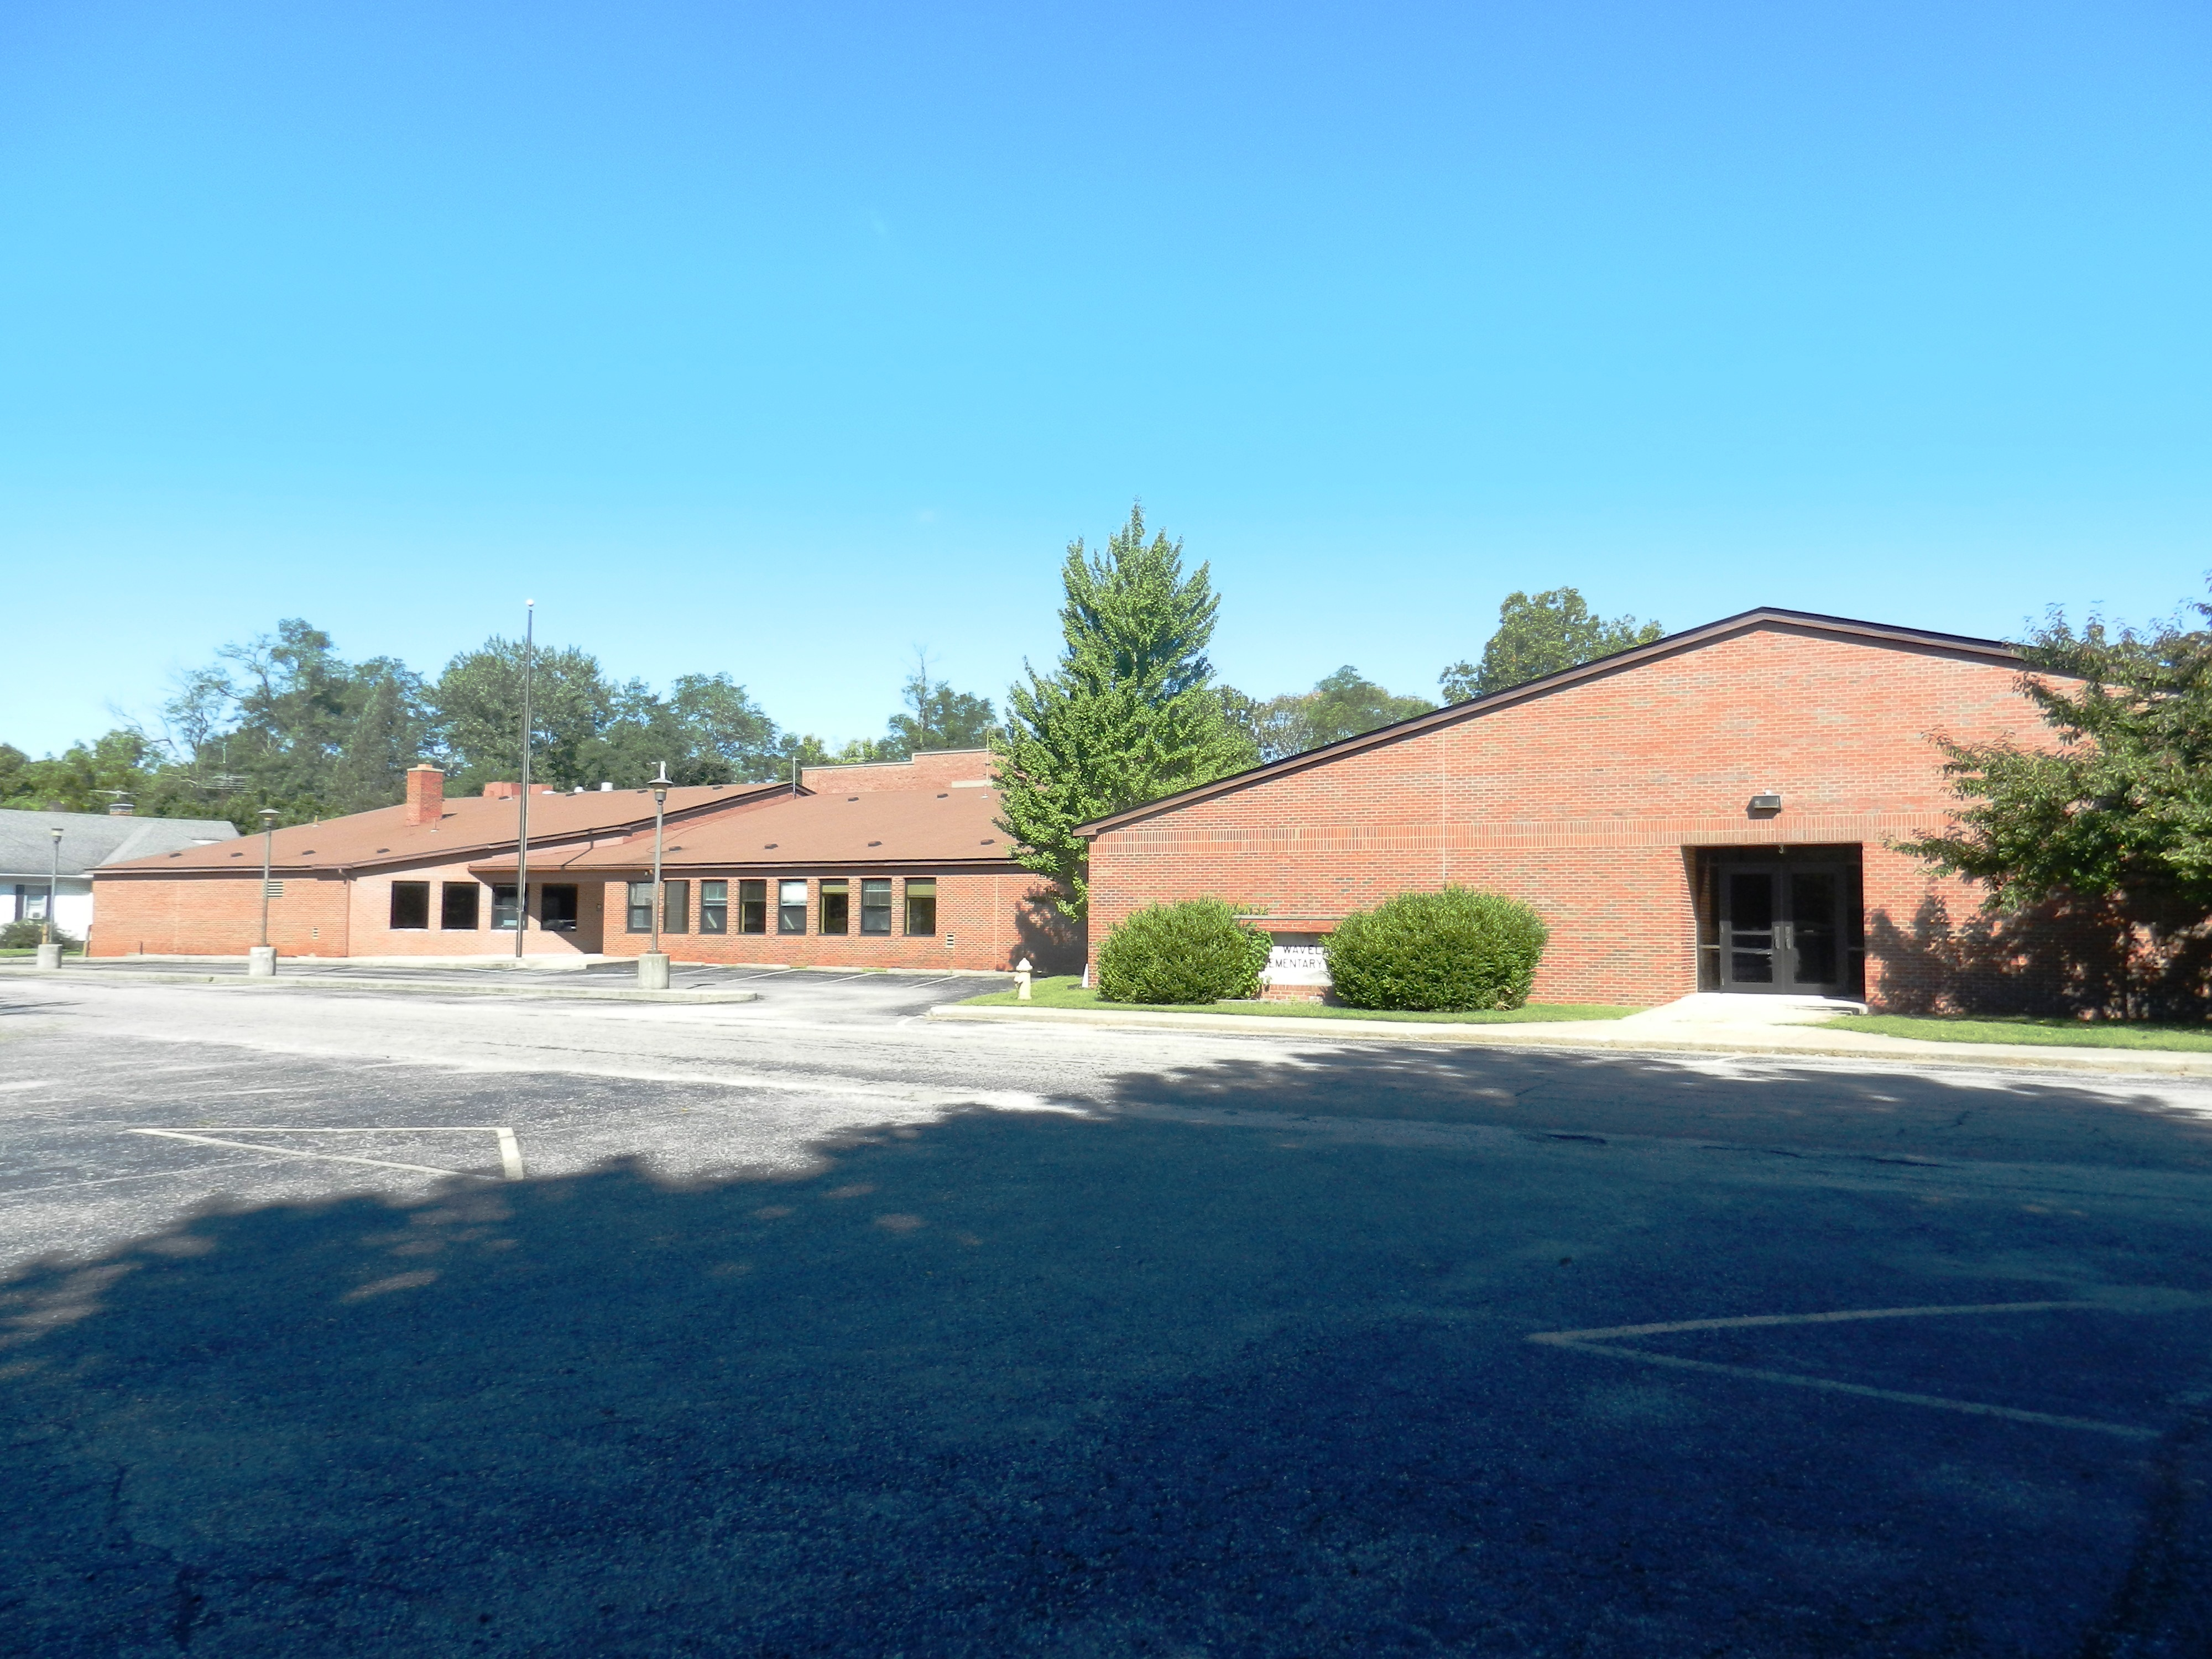 33,000± SQ FT SCHOOL & GYMNASIUM – LOTS OF POTENTIAL USES!